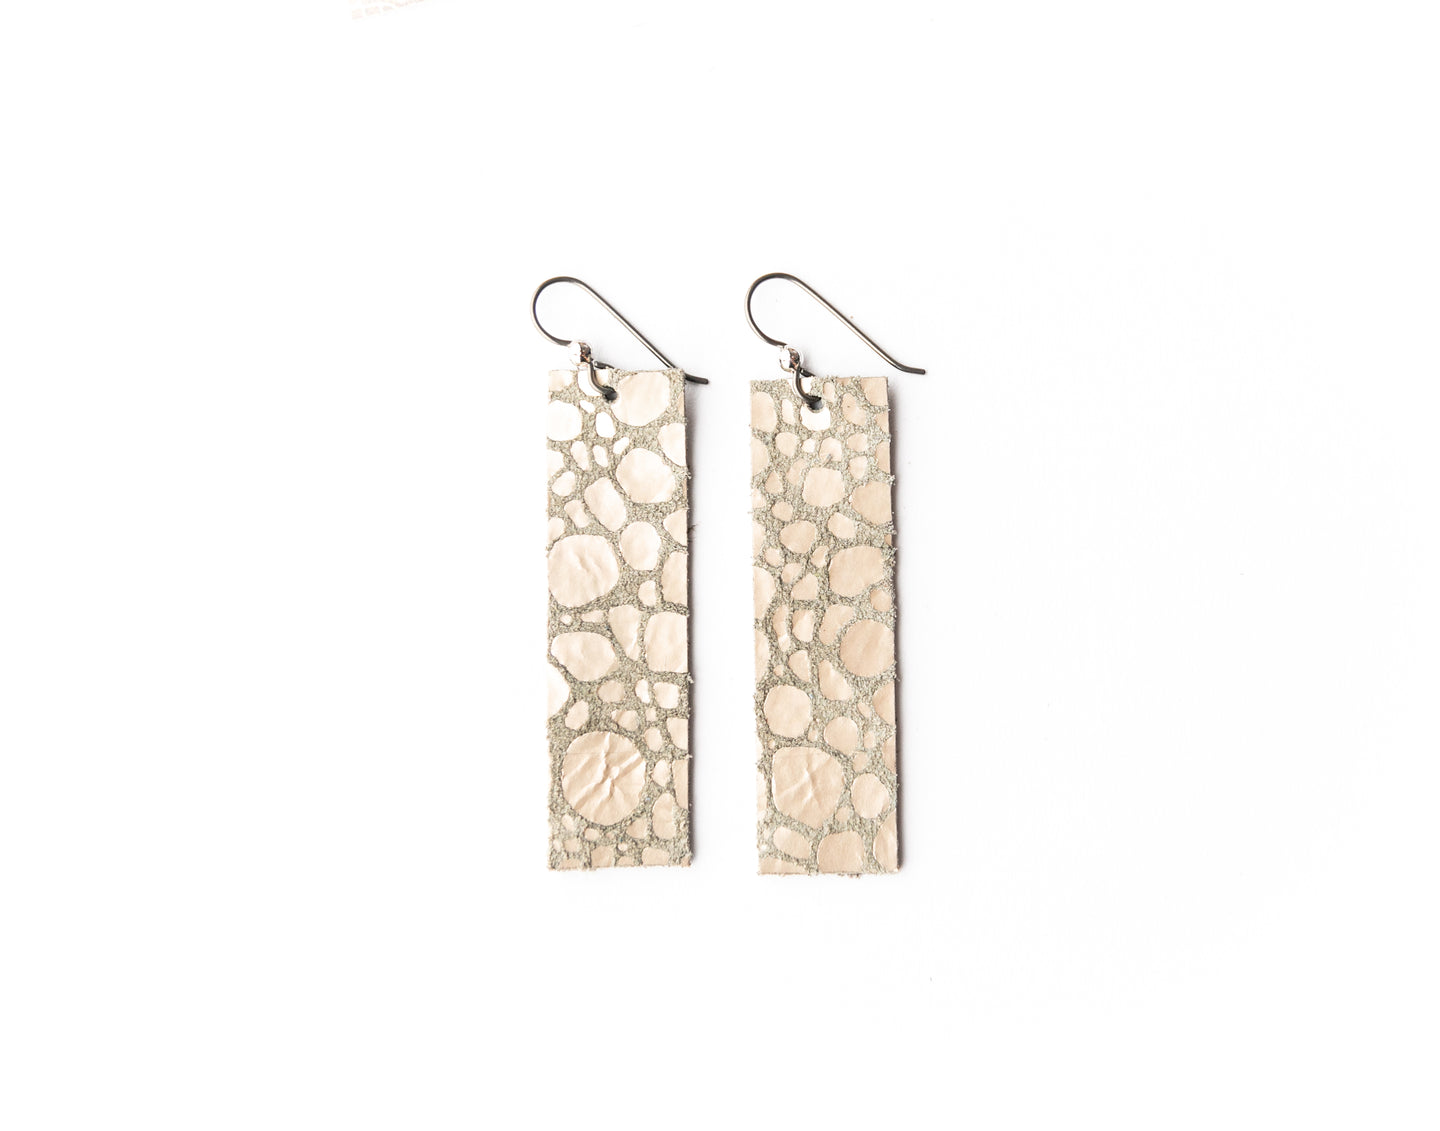 Pebbles in Platinum Four Corners Leather Earrings